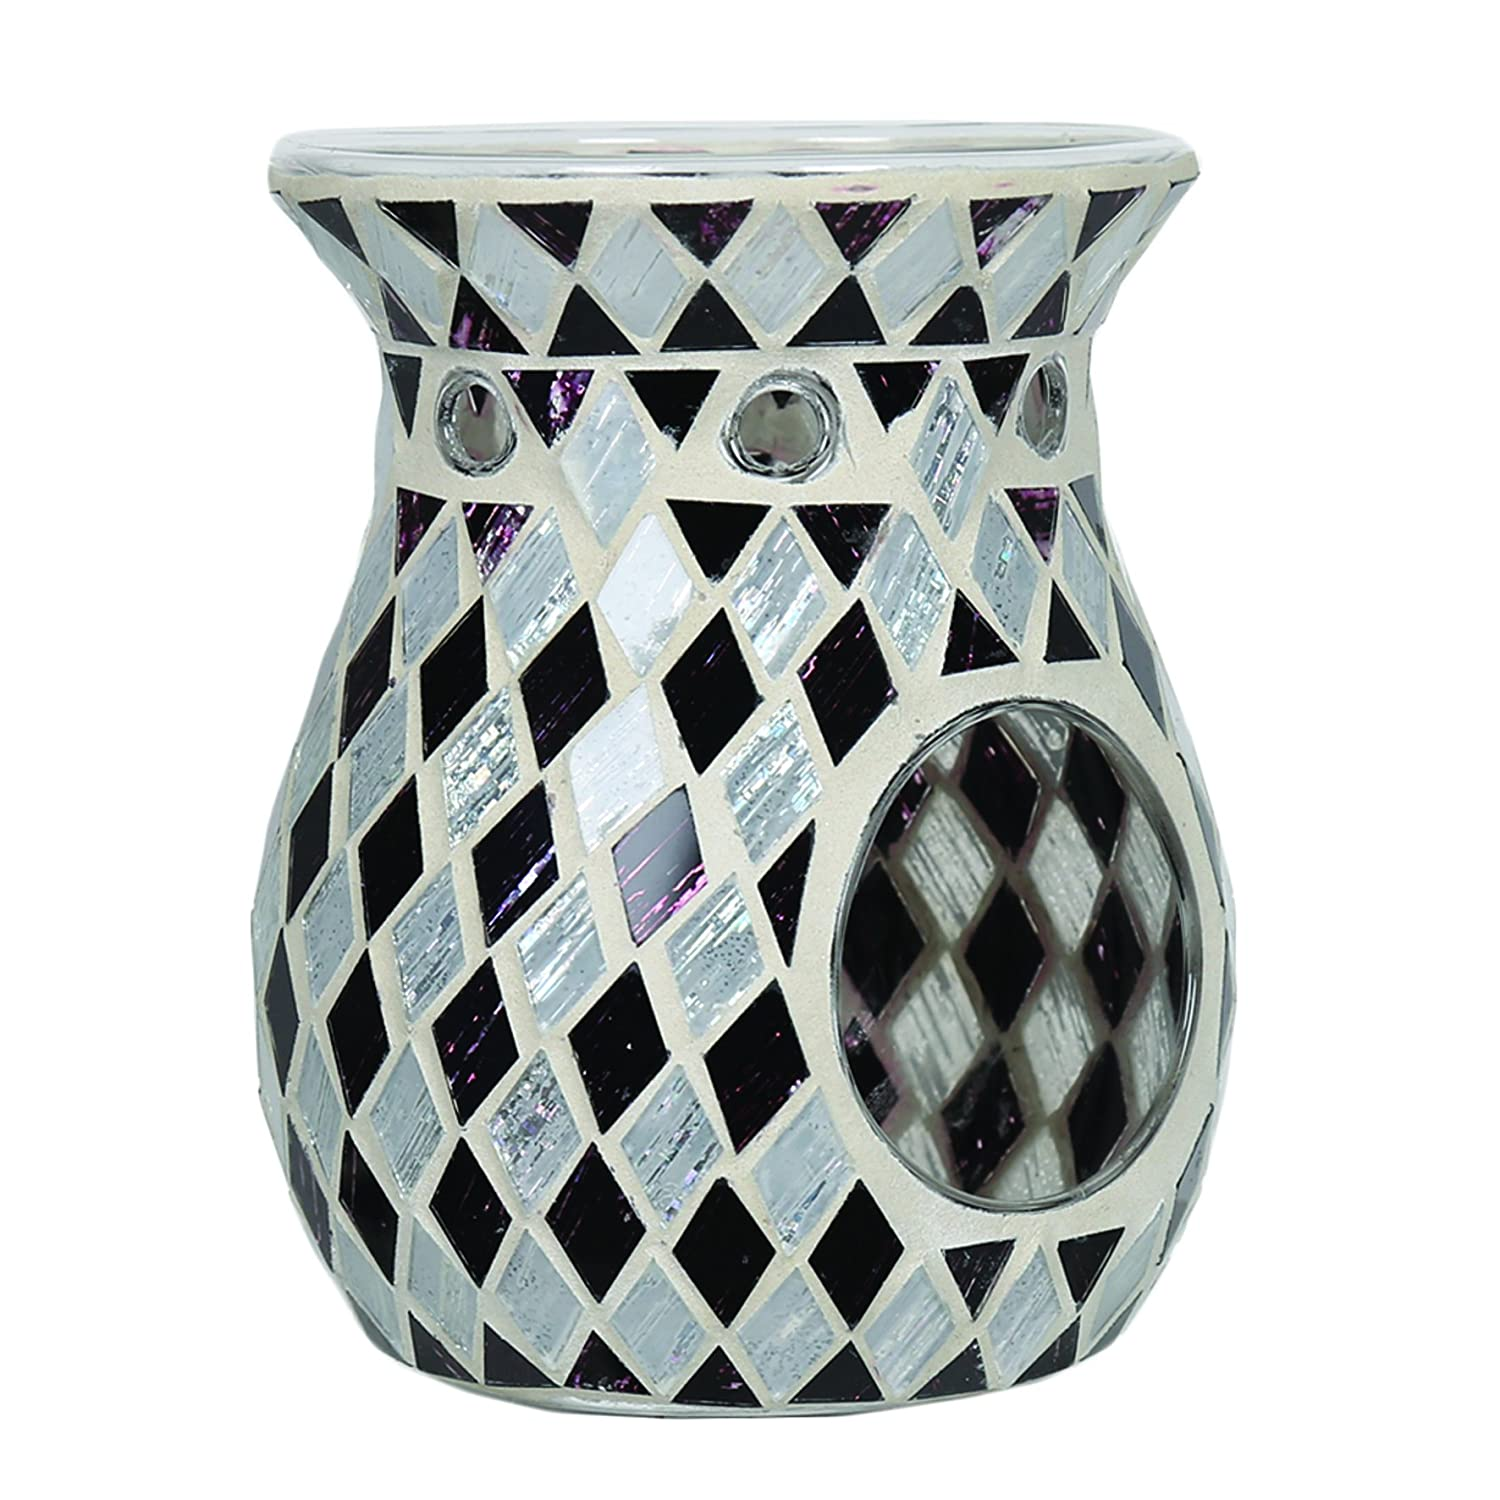 Aroma Accessories Diamond Mosaic Wax Melt Burner, Black, 14 cm VC756